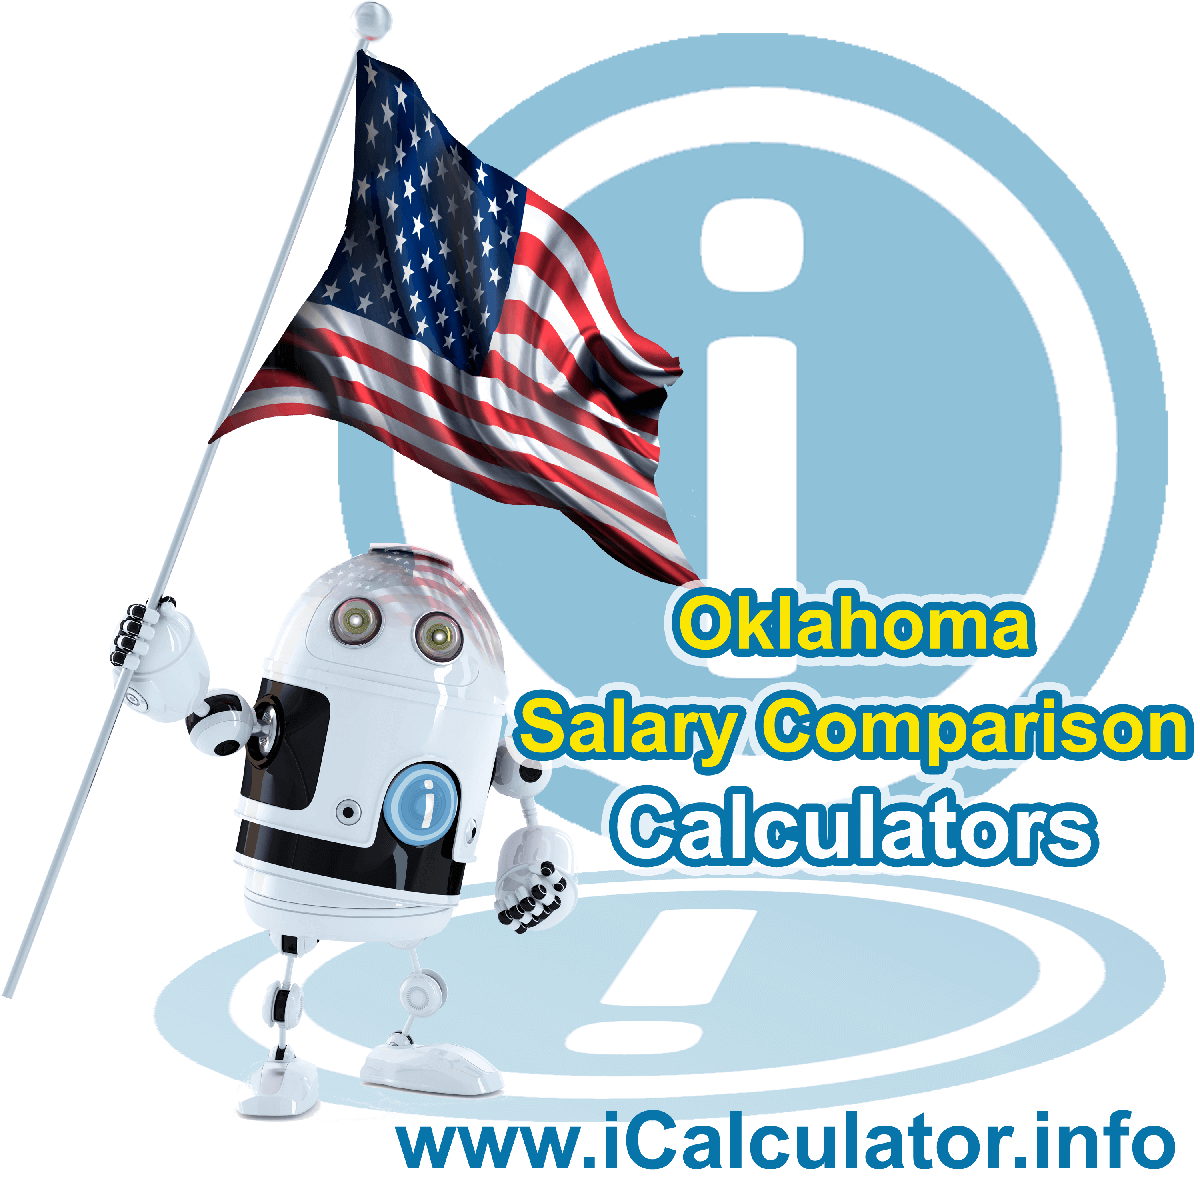 Oklahoma Salary Comparison Calculator 2019 | iCalculator | The Oklahoma Salary Comparison Calculator allows you to quickly calculate and compare upto 6 salaries in Oklahoma or between other states for the 2019 tax year and historical tax years. Its an excellent tool for jobseekers, pay raise comparison and comparison of salaries between different US States